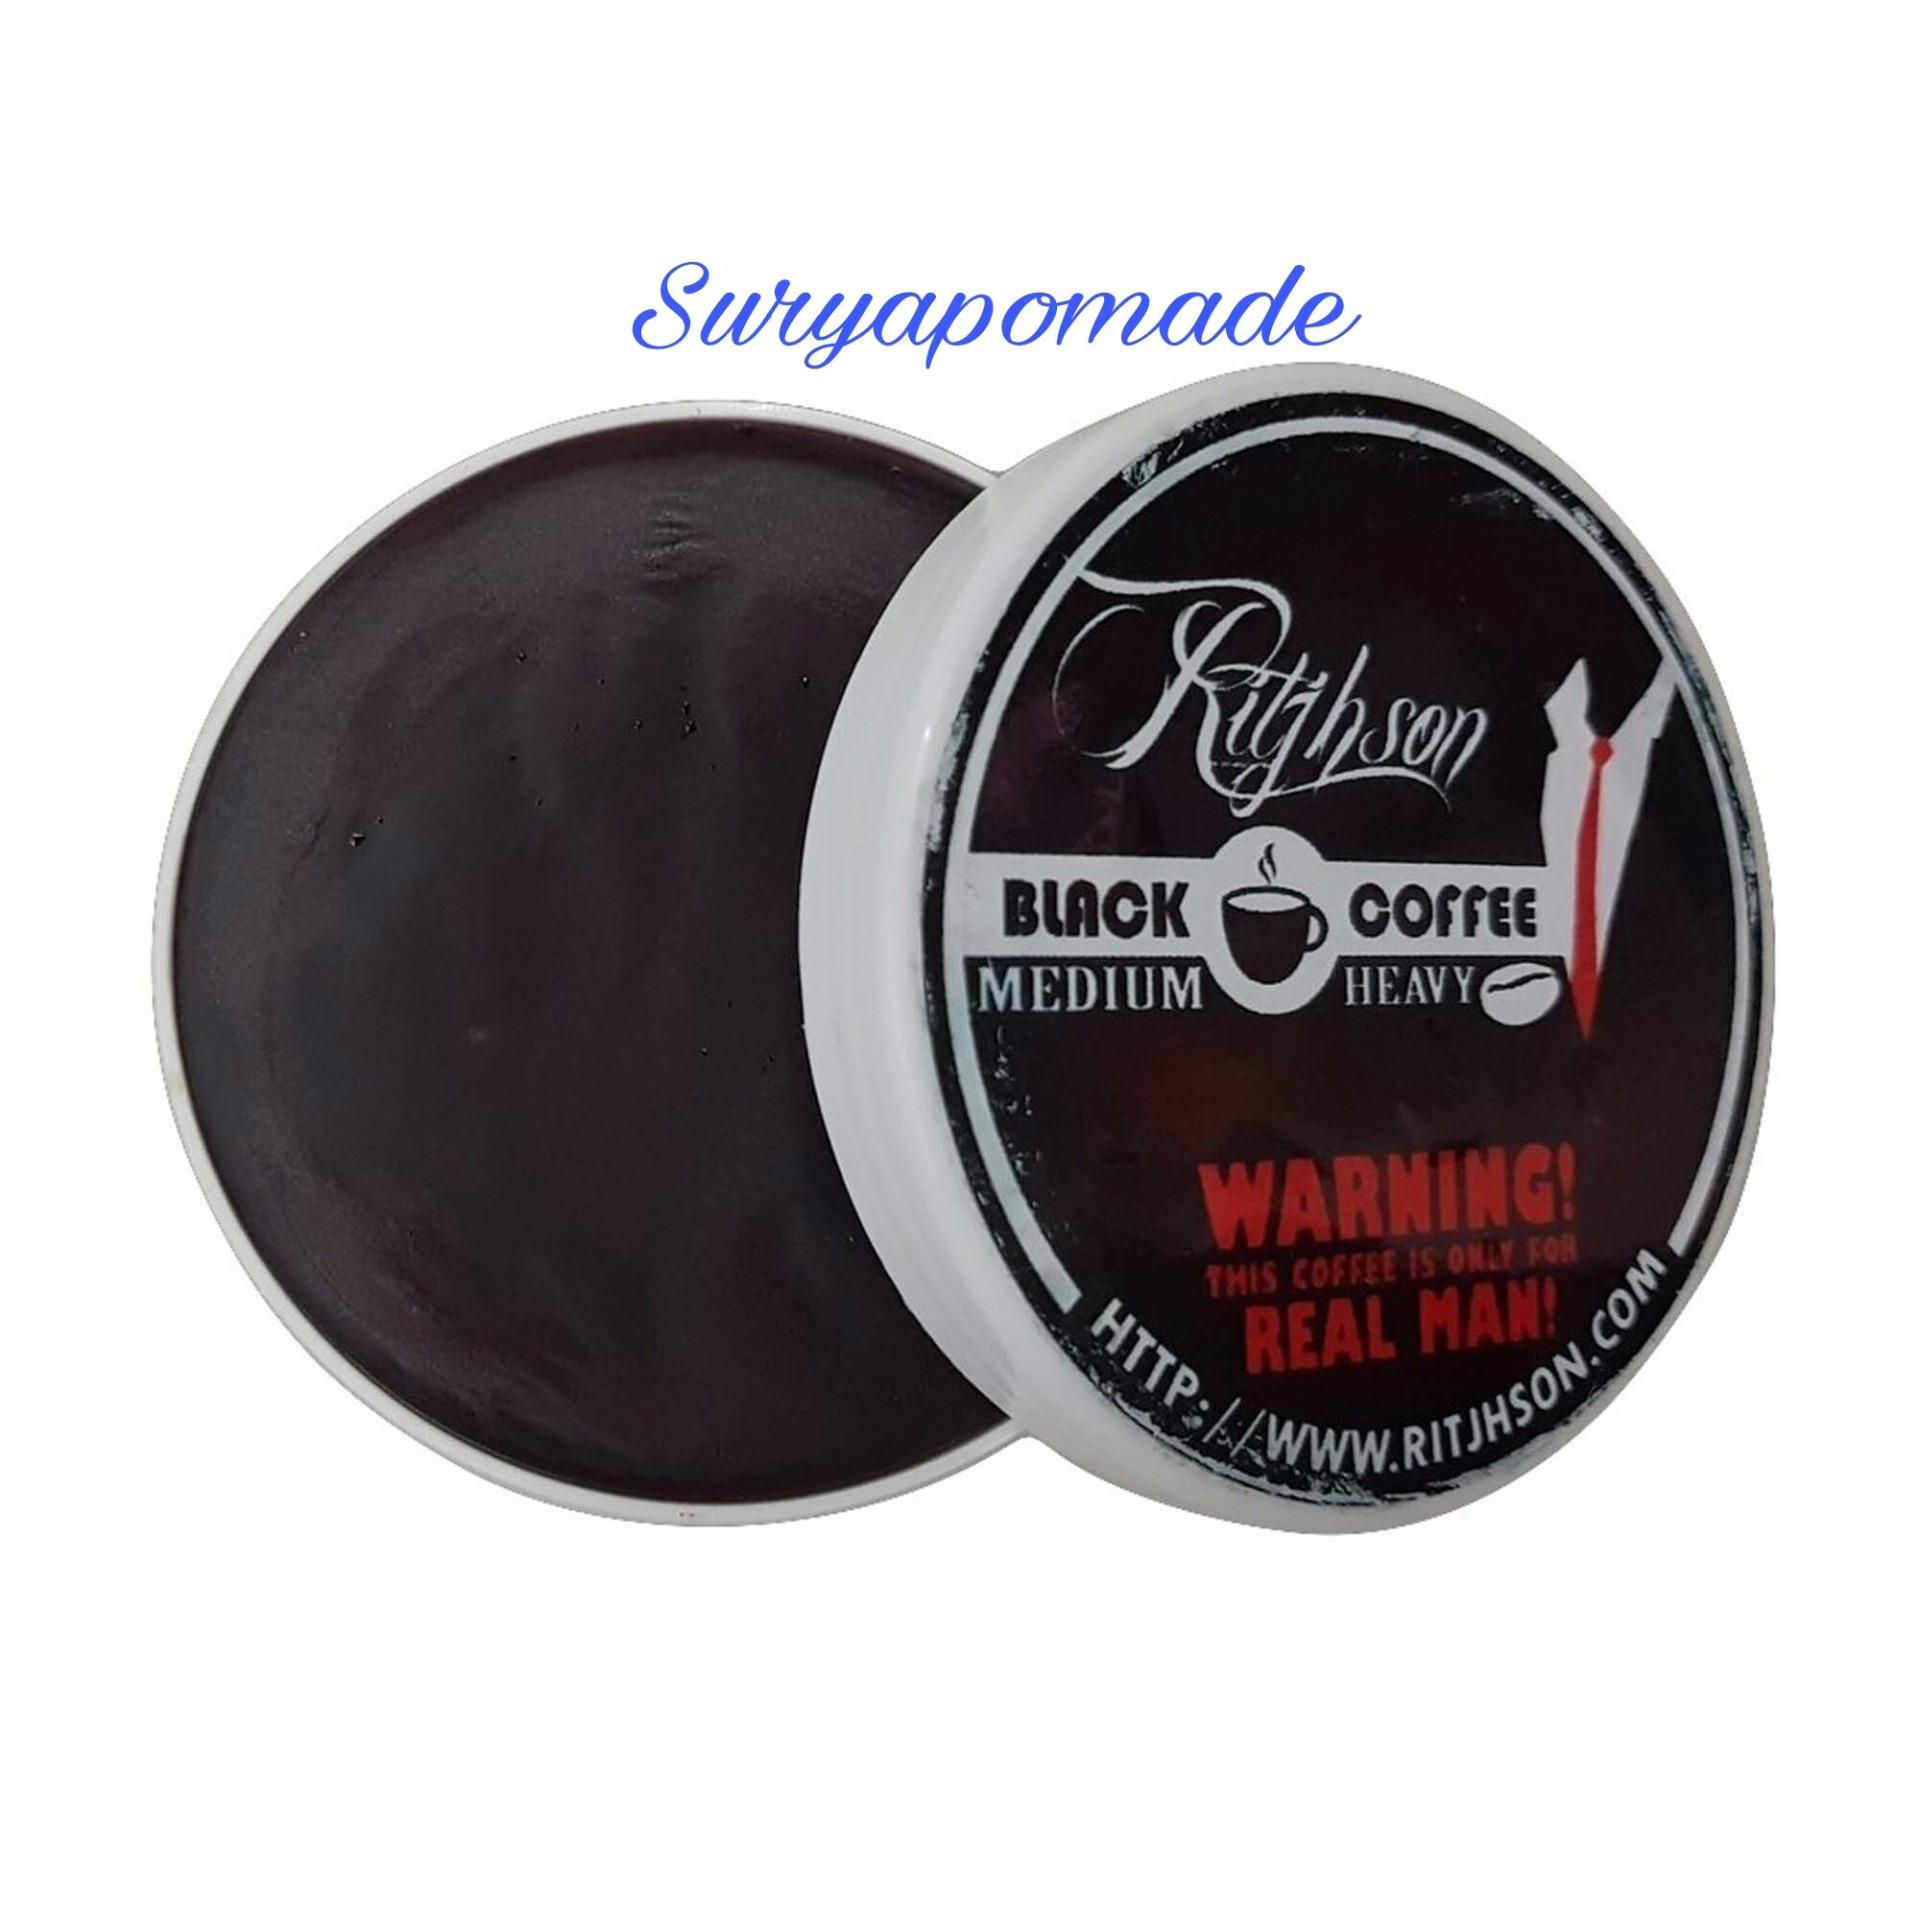 ULASAN Pomade Ritjhson Black Coffee Kopi Strong Hold Oilbase 3.5oz – Free Sisir Terlaris